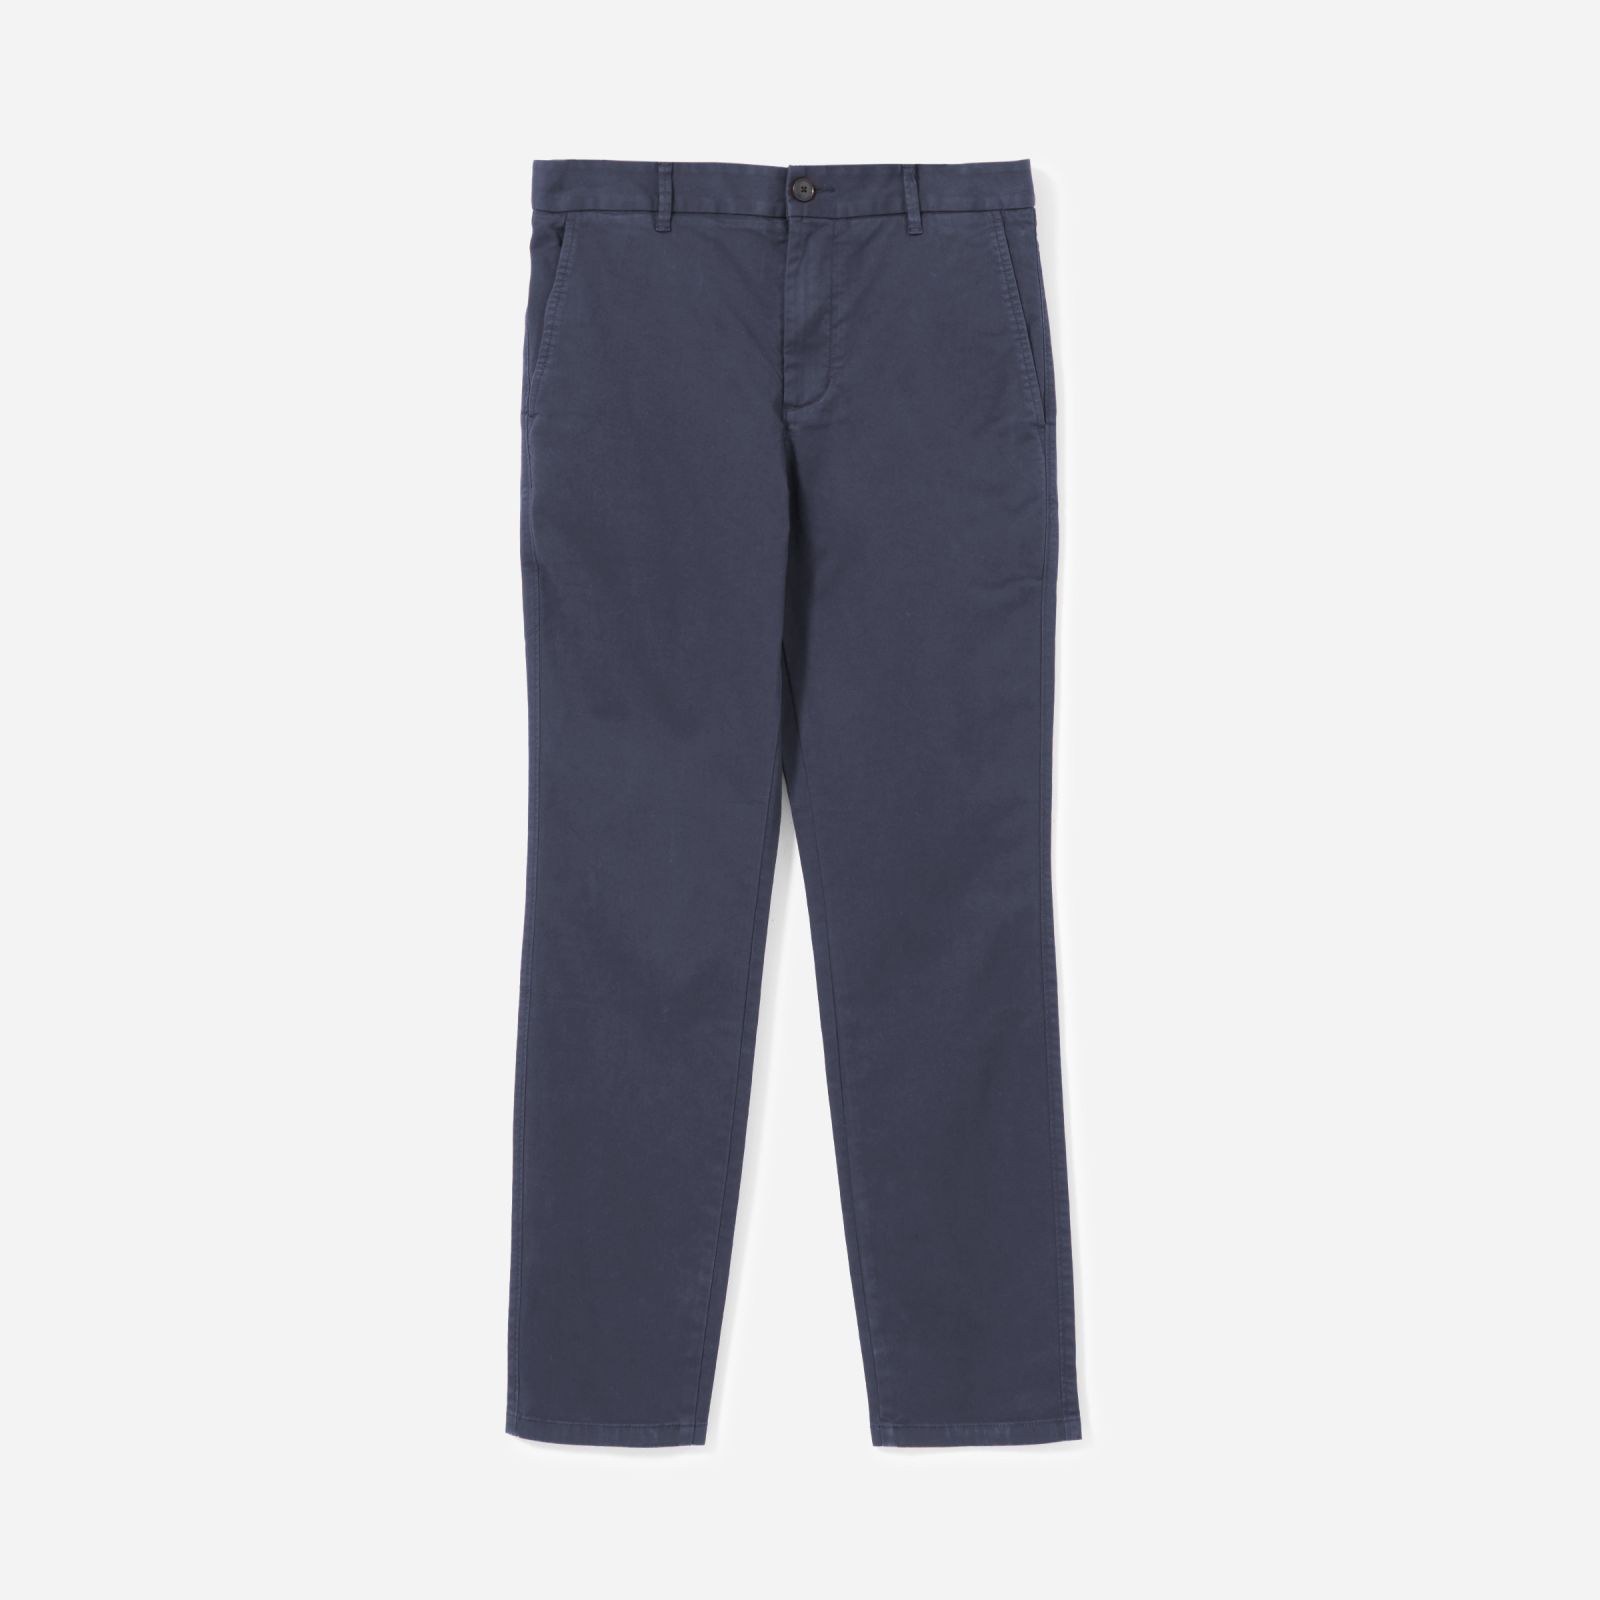 men's heavyweight athletic chino by everlane in navy, size 38x32